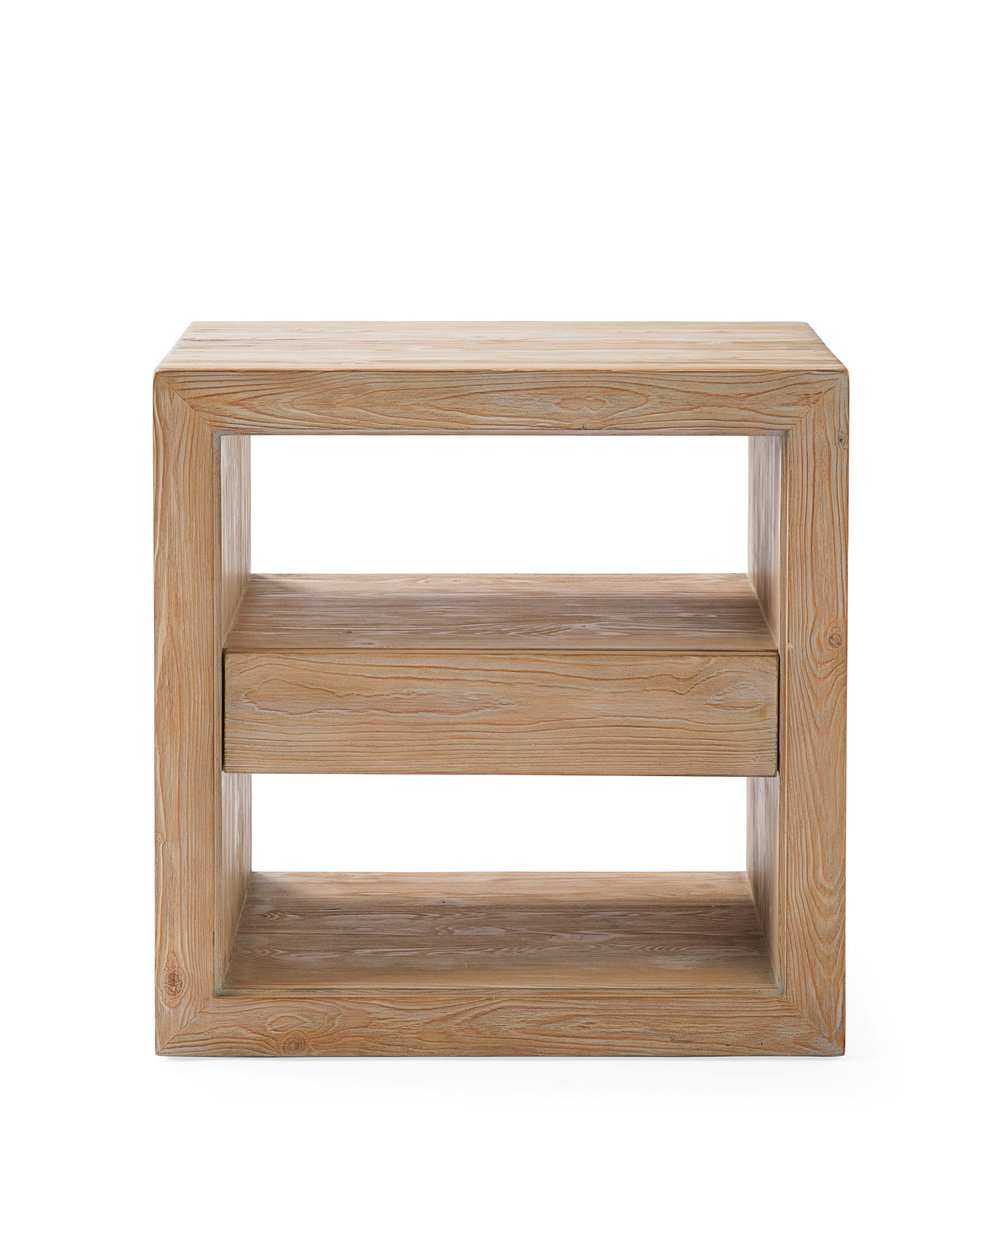 Furn_Atelier_Side_Table_With_Drawer_Sun_Bleached_Pine_MV_0153_Crop_SH.jpg